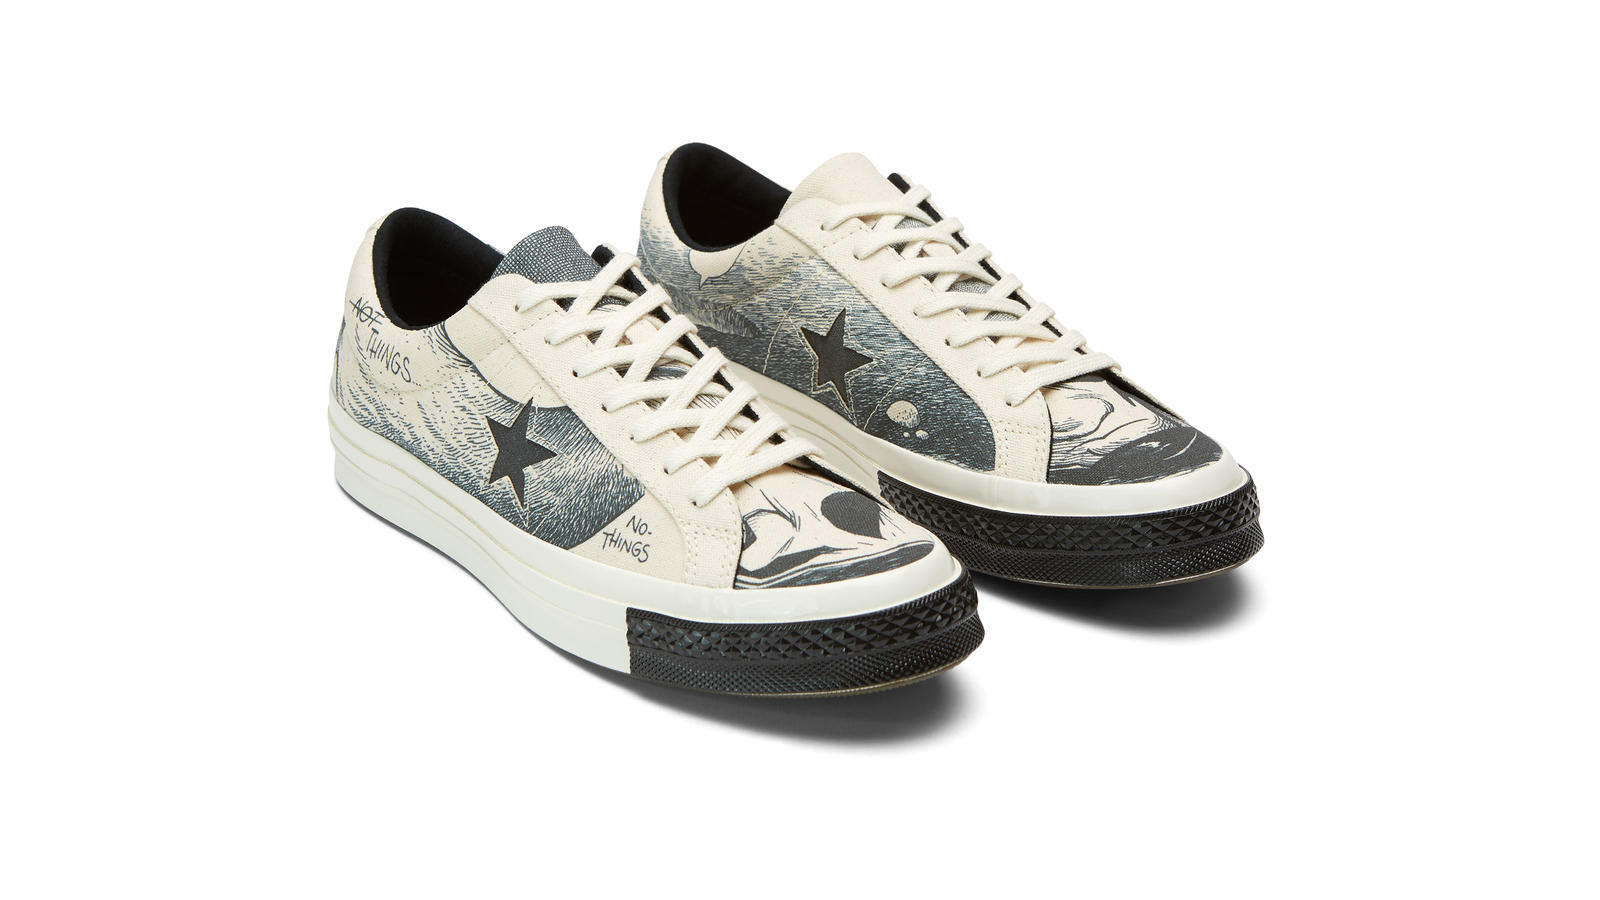 Converse 22383 Fl Artist Series Pdp Images 020